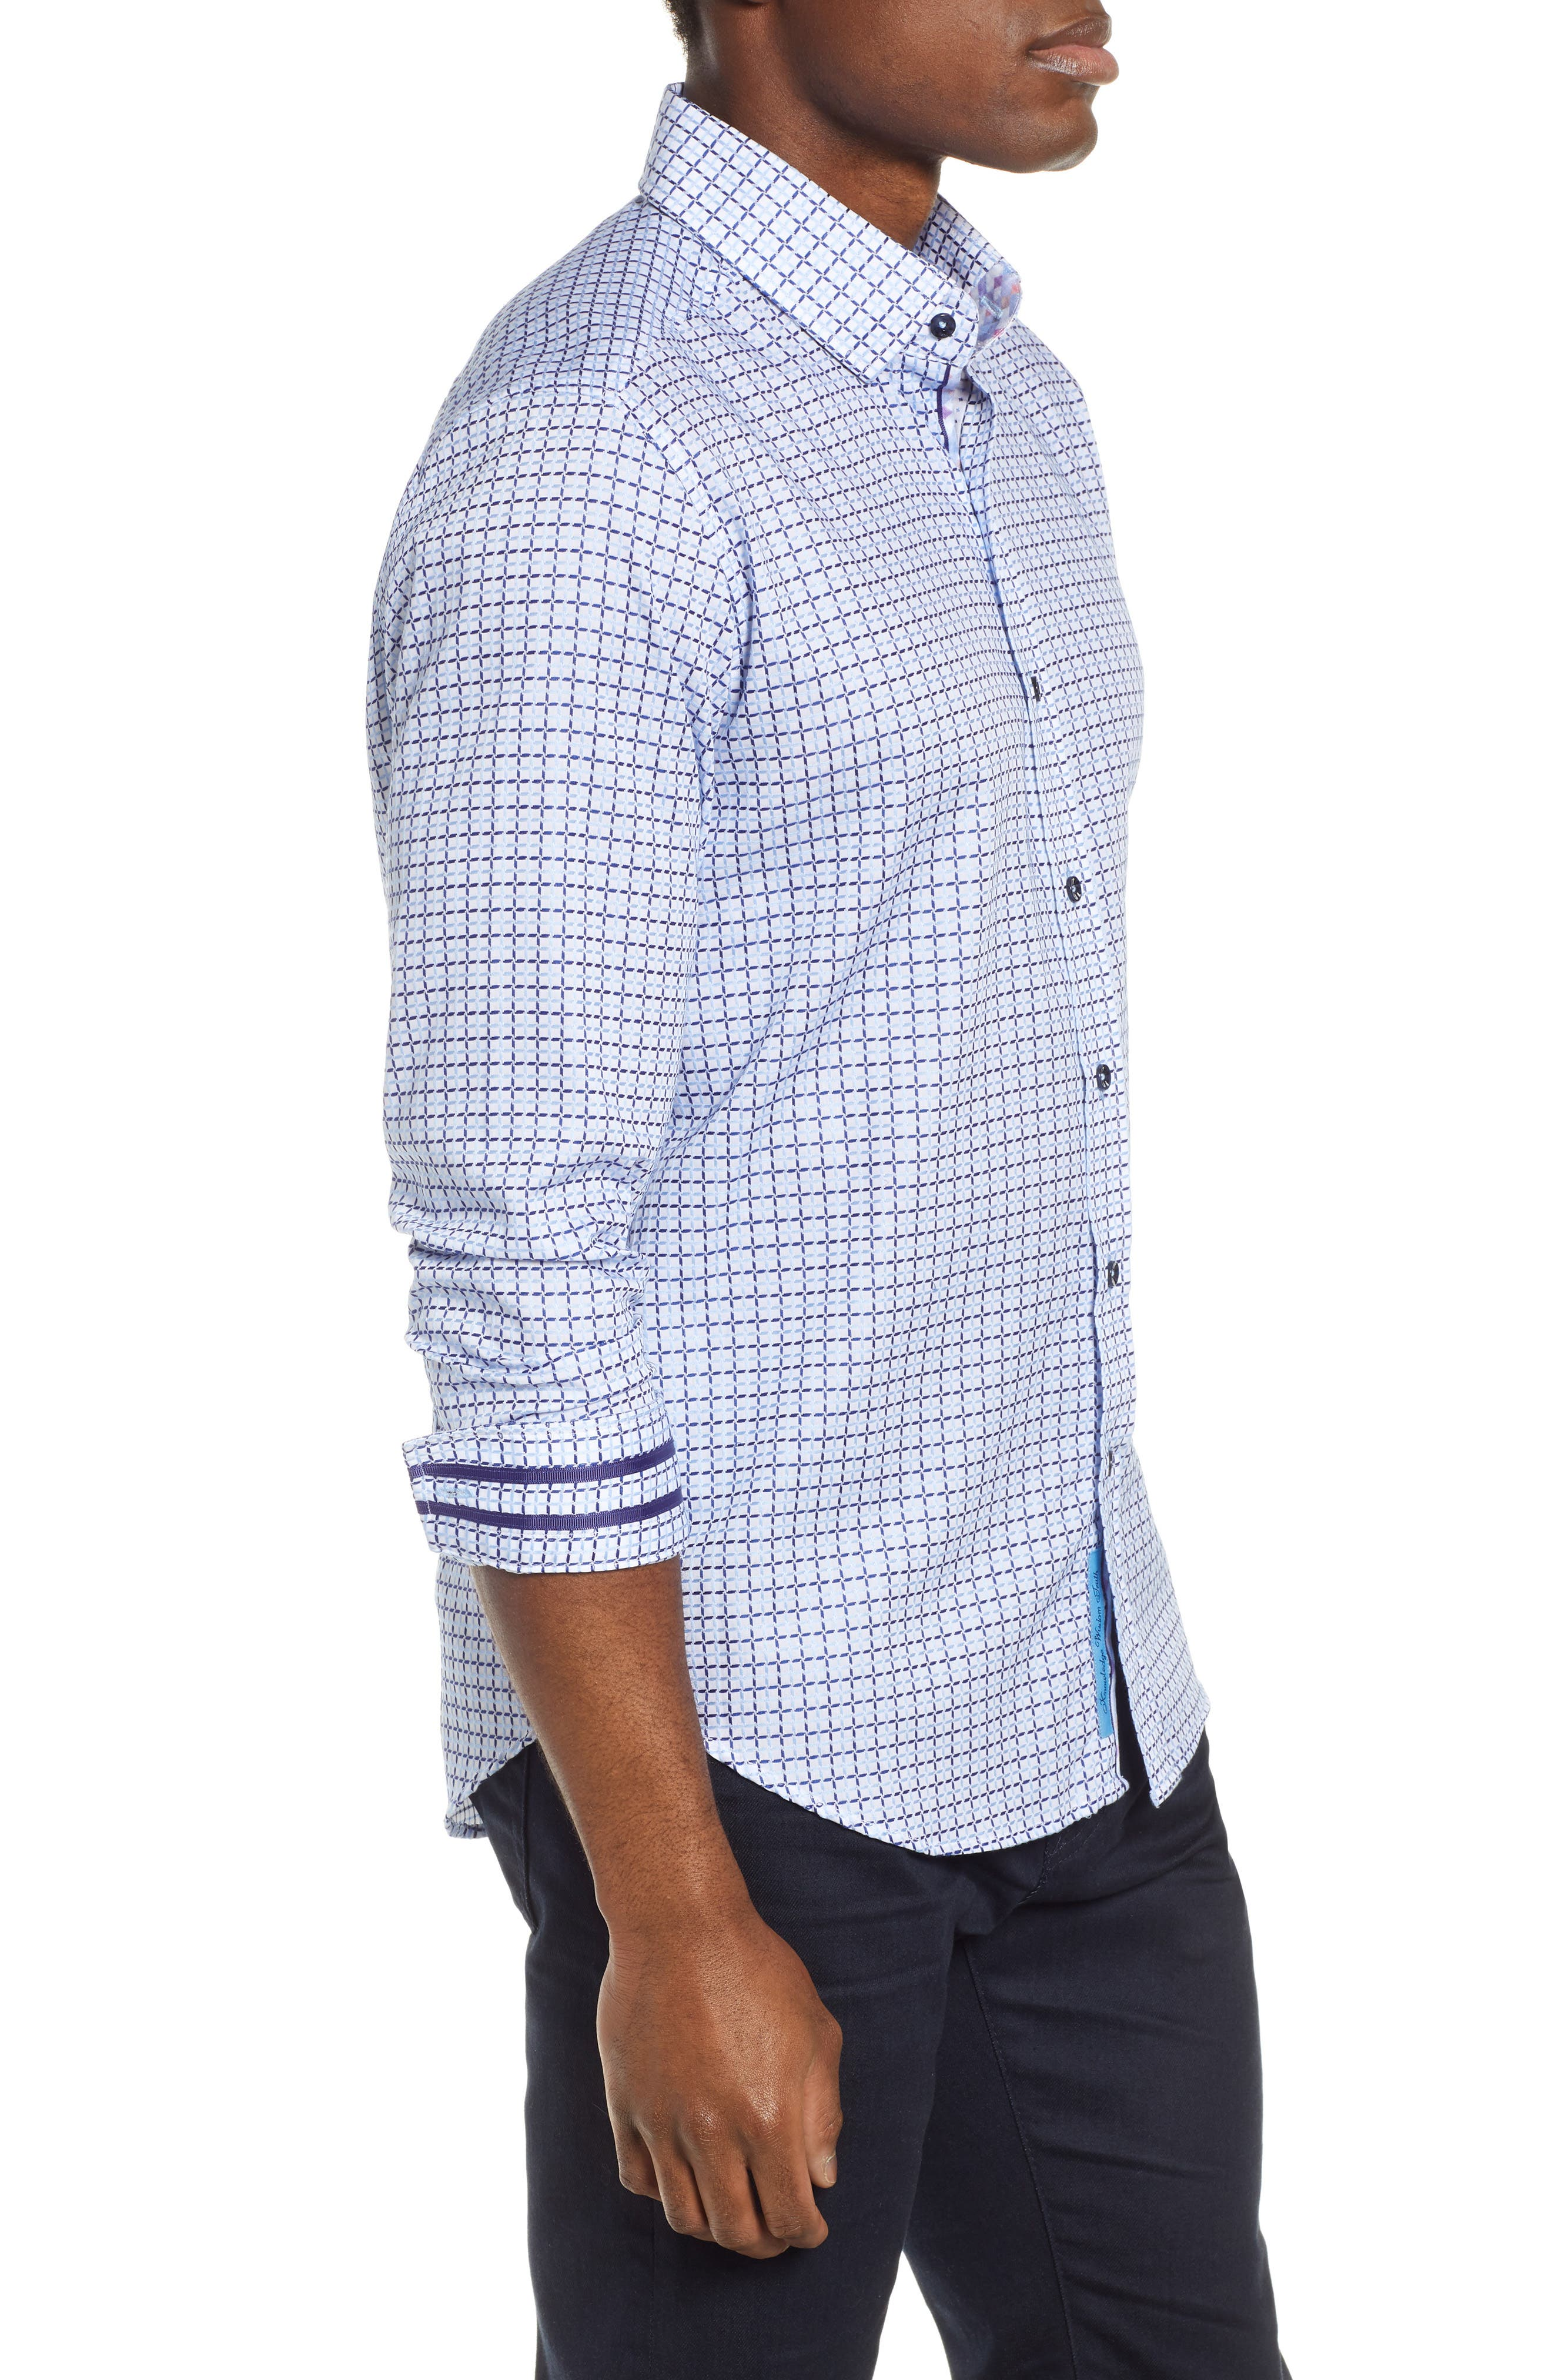 ROBERT GRAHAM,                             Axton Tailored Fit Check Sport Shirt,                             Alternate thumbnail 4, color,                             BLUE